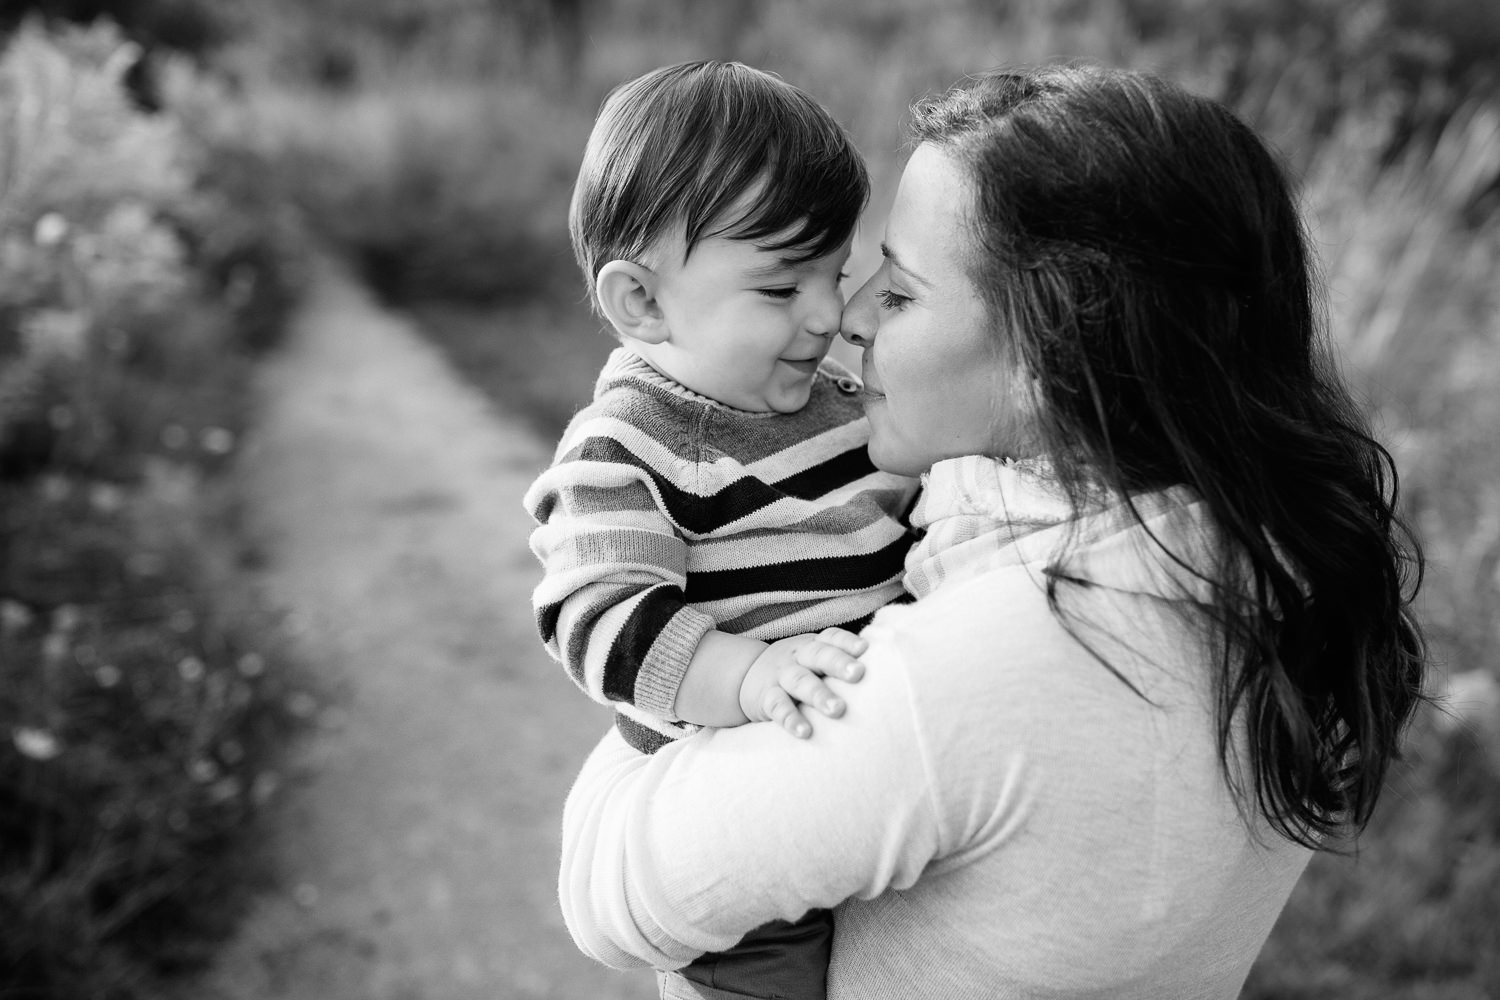 mom standing in golden field holding 1 year old baby boy, mother and son nose-to-nose, smiling - Barrie LifestylePhotos